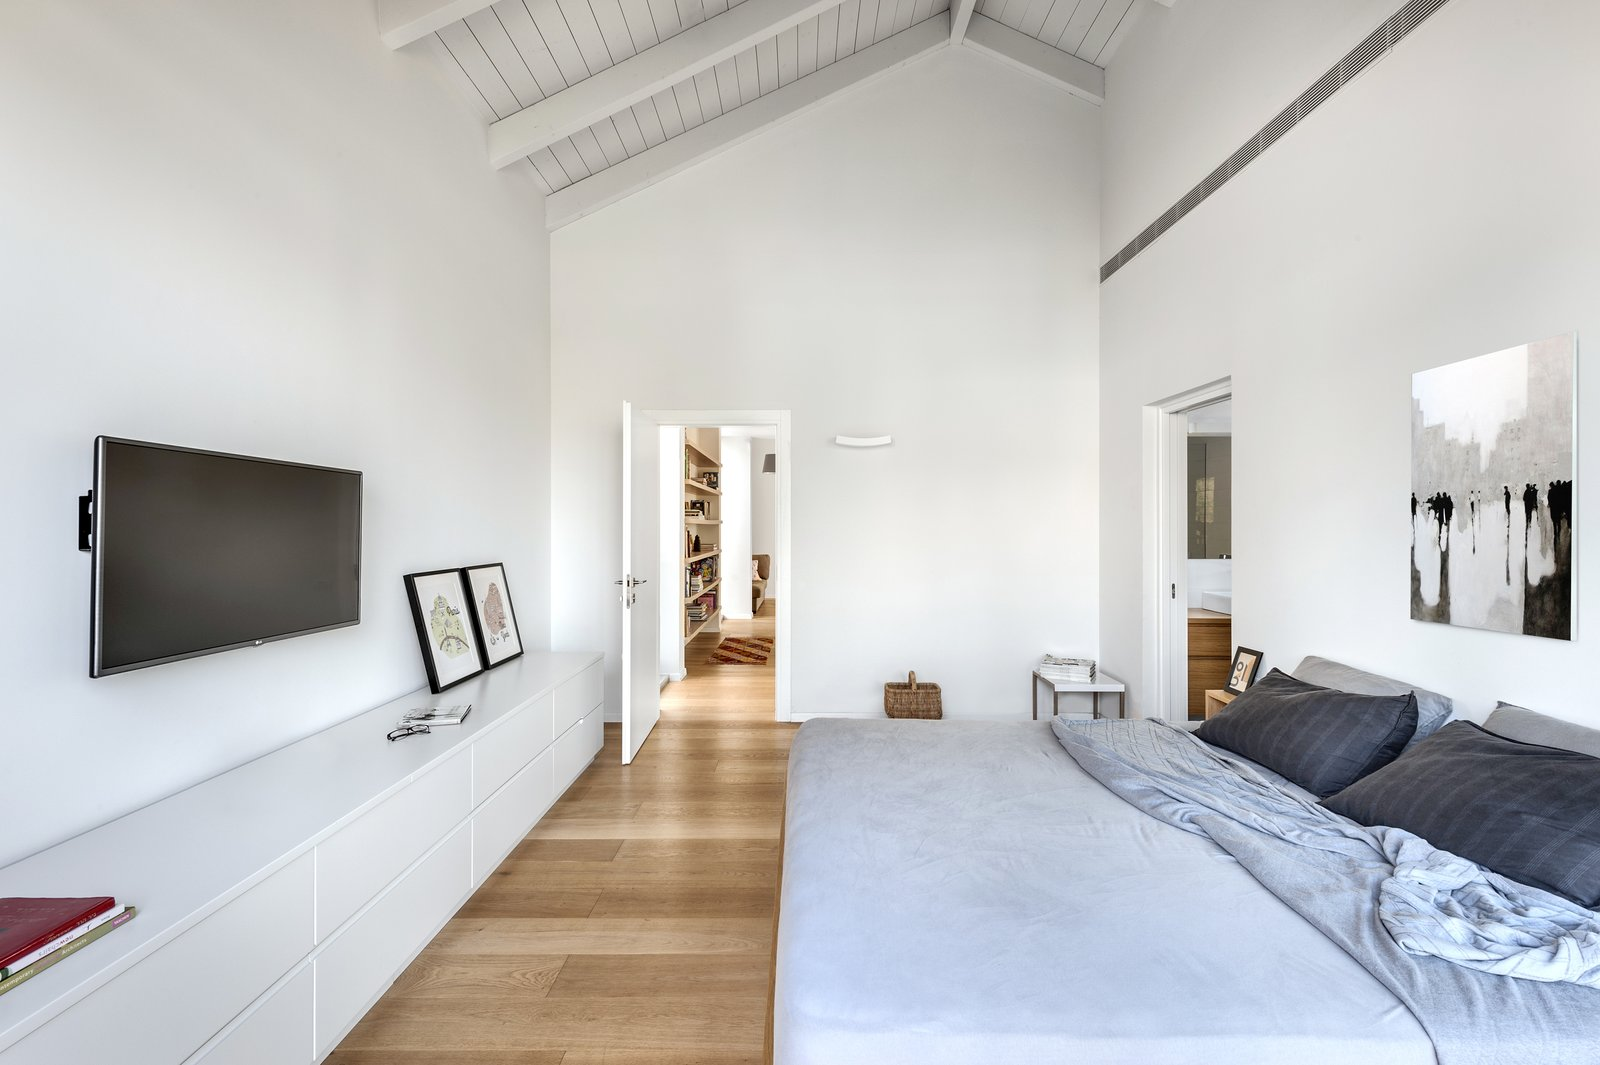 Bedroom, Bed, Light Hardwood Floor, Wall Lighting, and Shelves Ravit Dvir Architecture and Design  The House in Harutzim